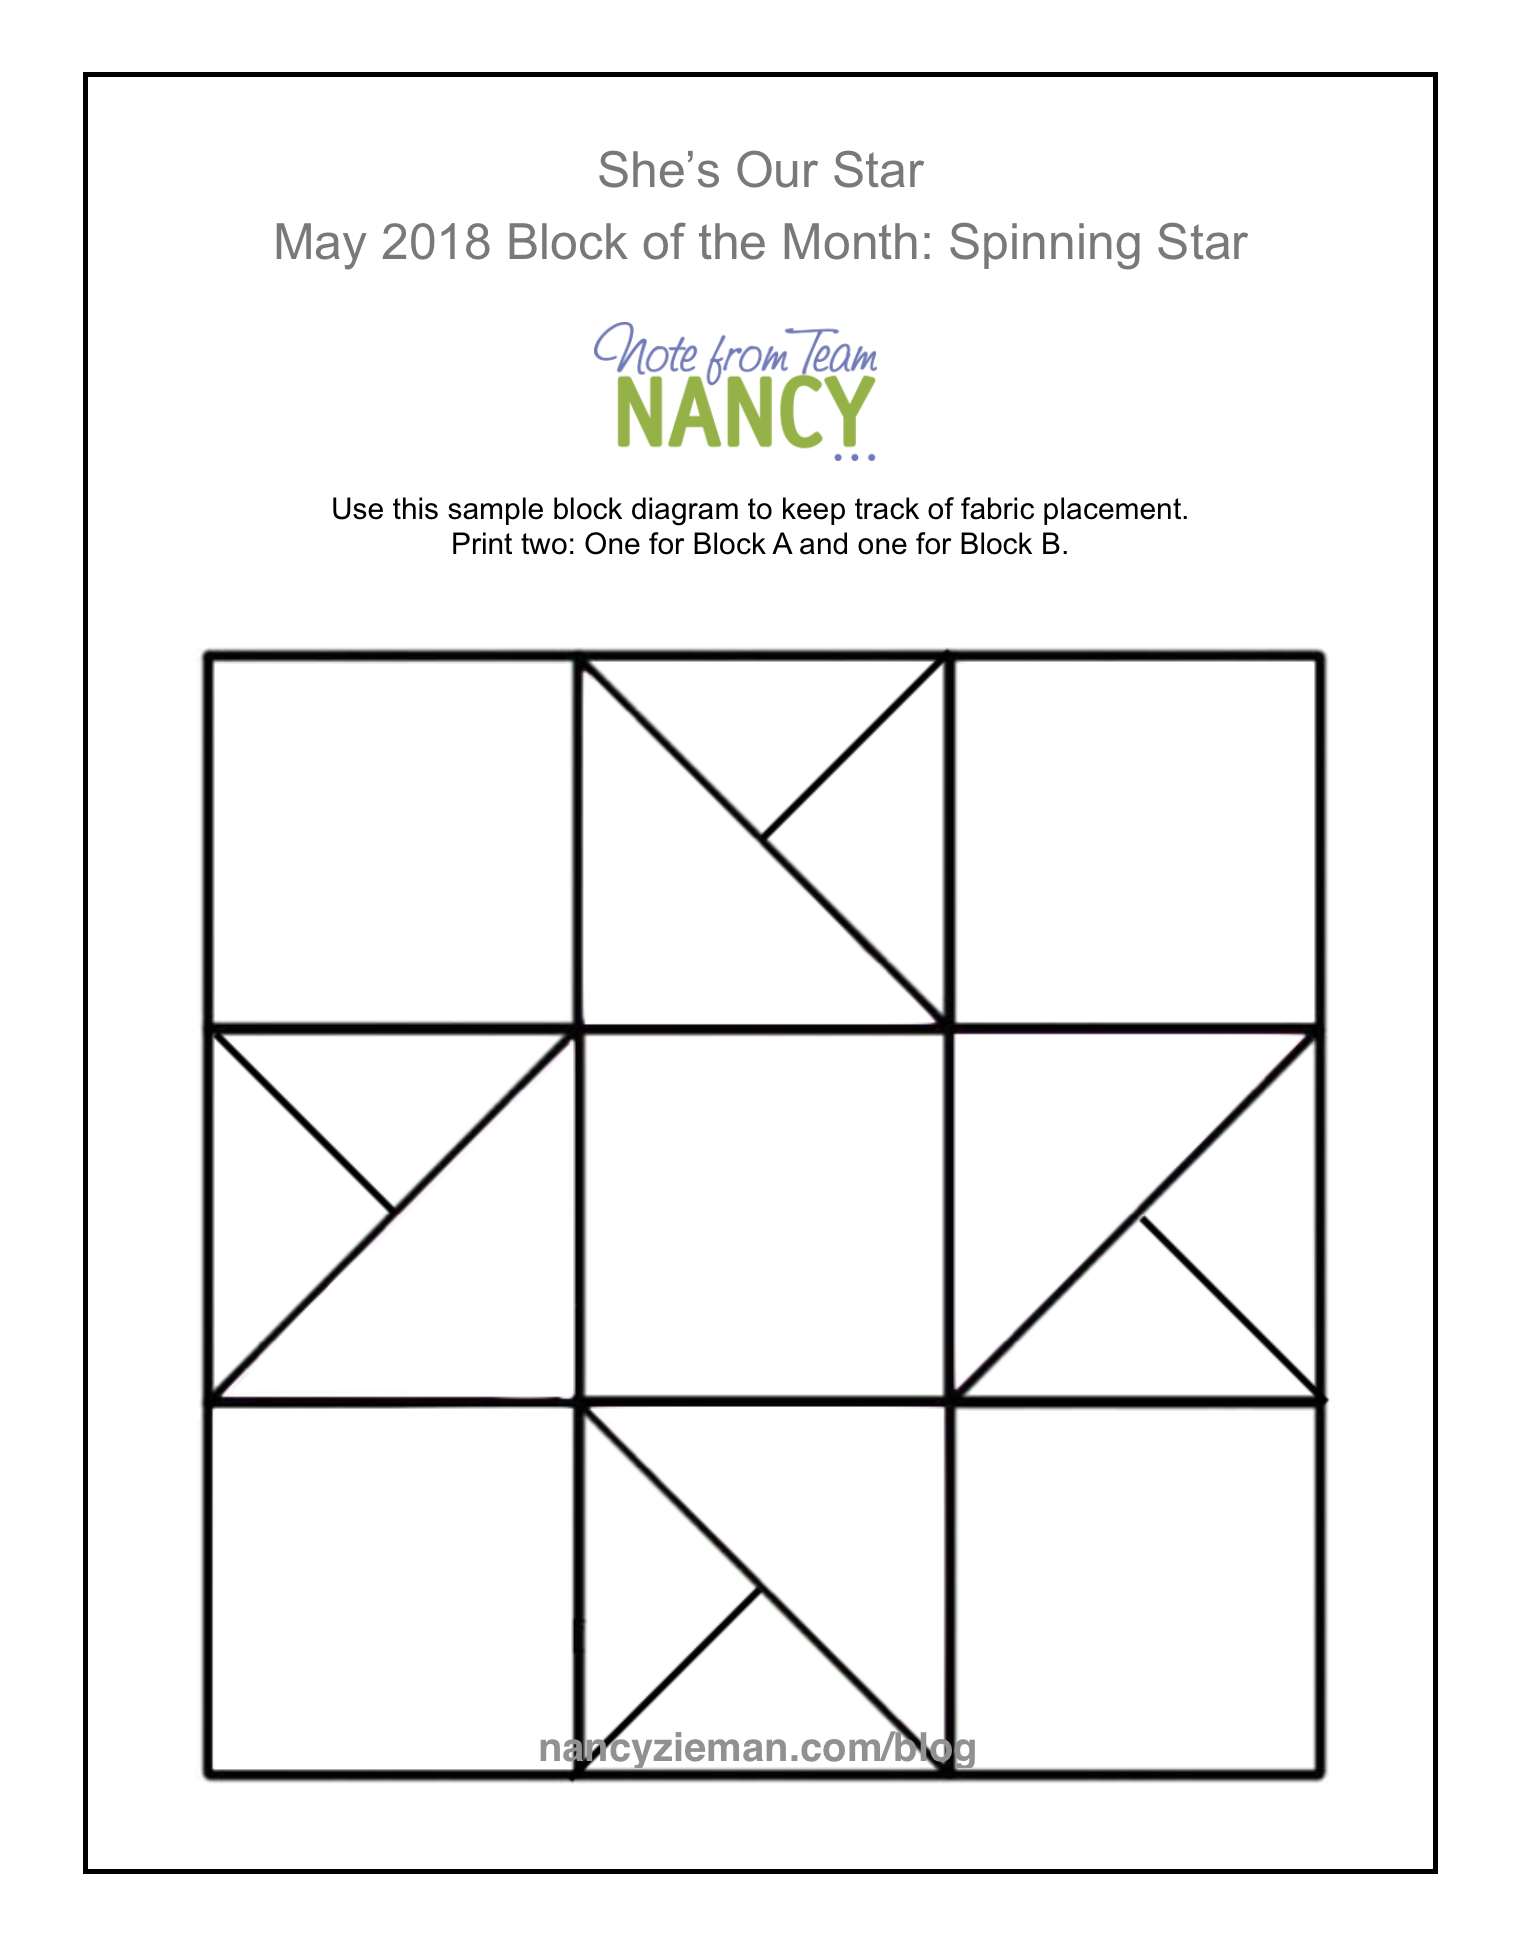 May 2018 Block of the Month Spinning Star